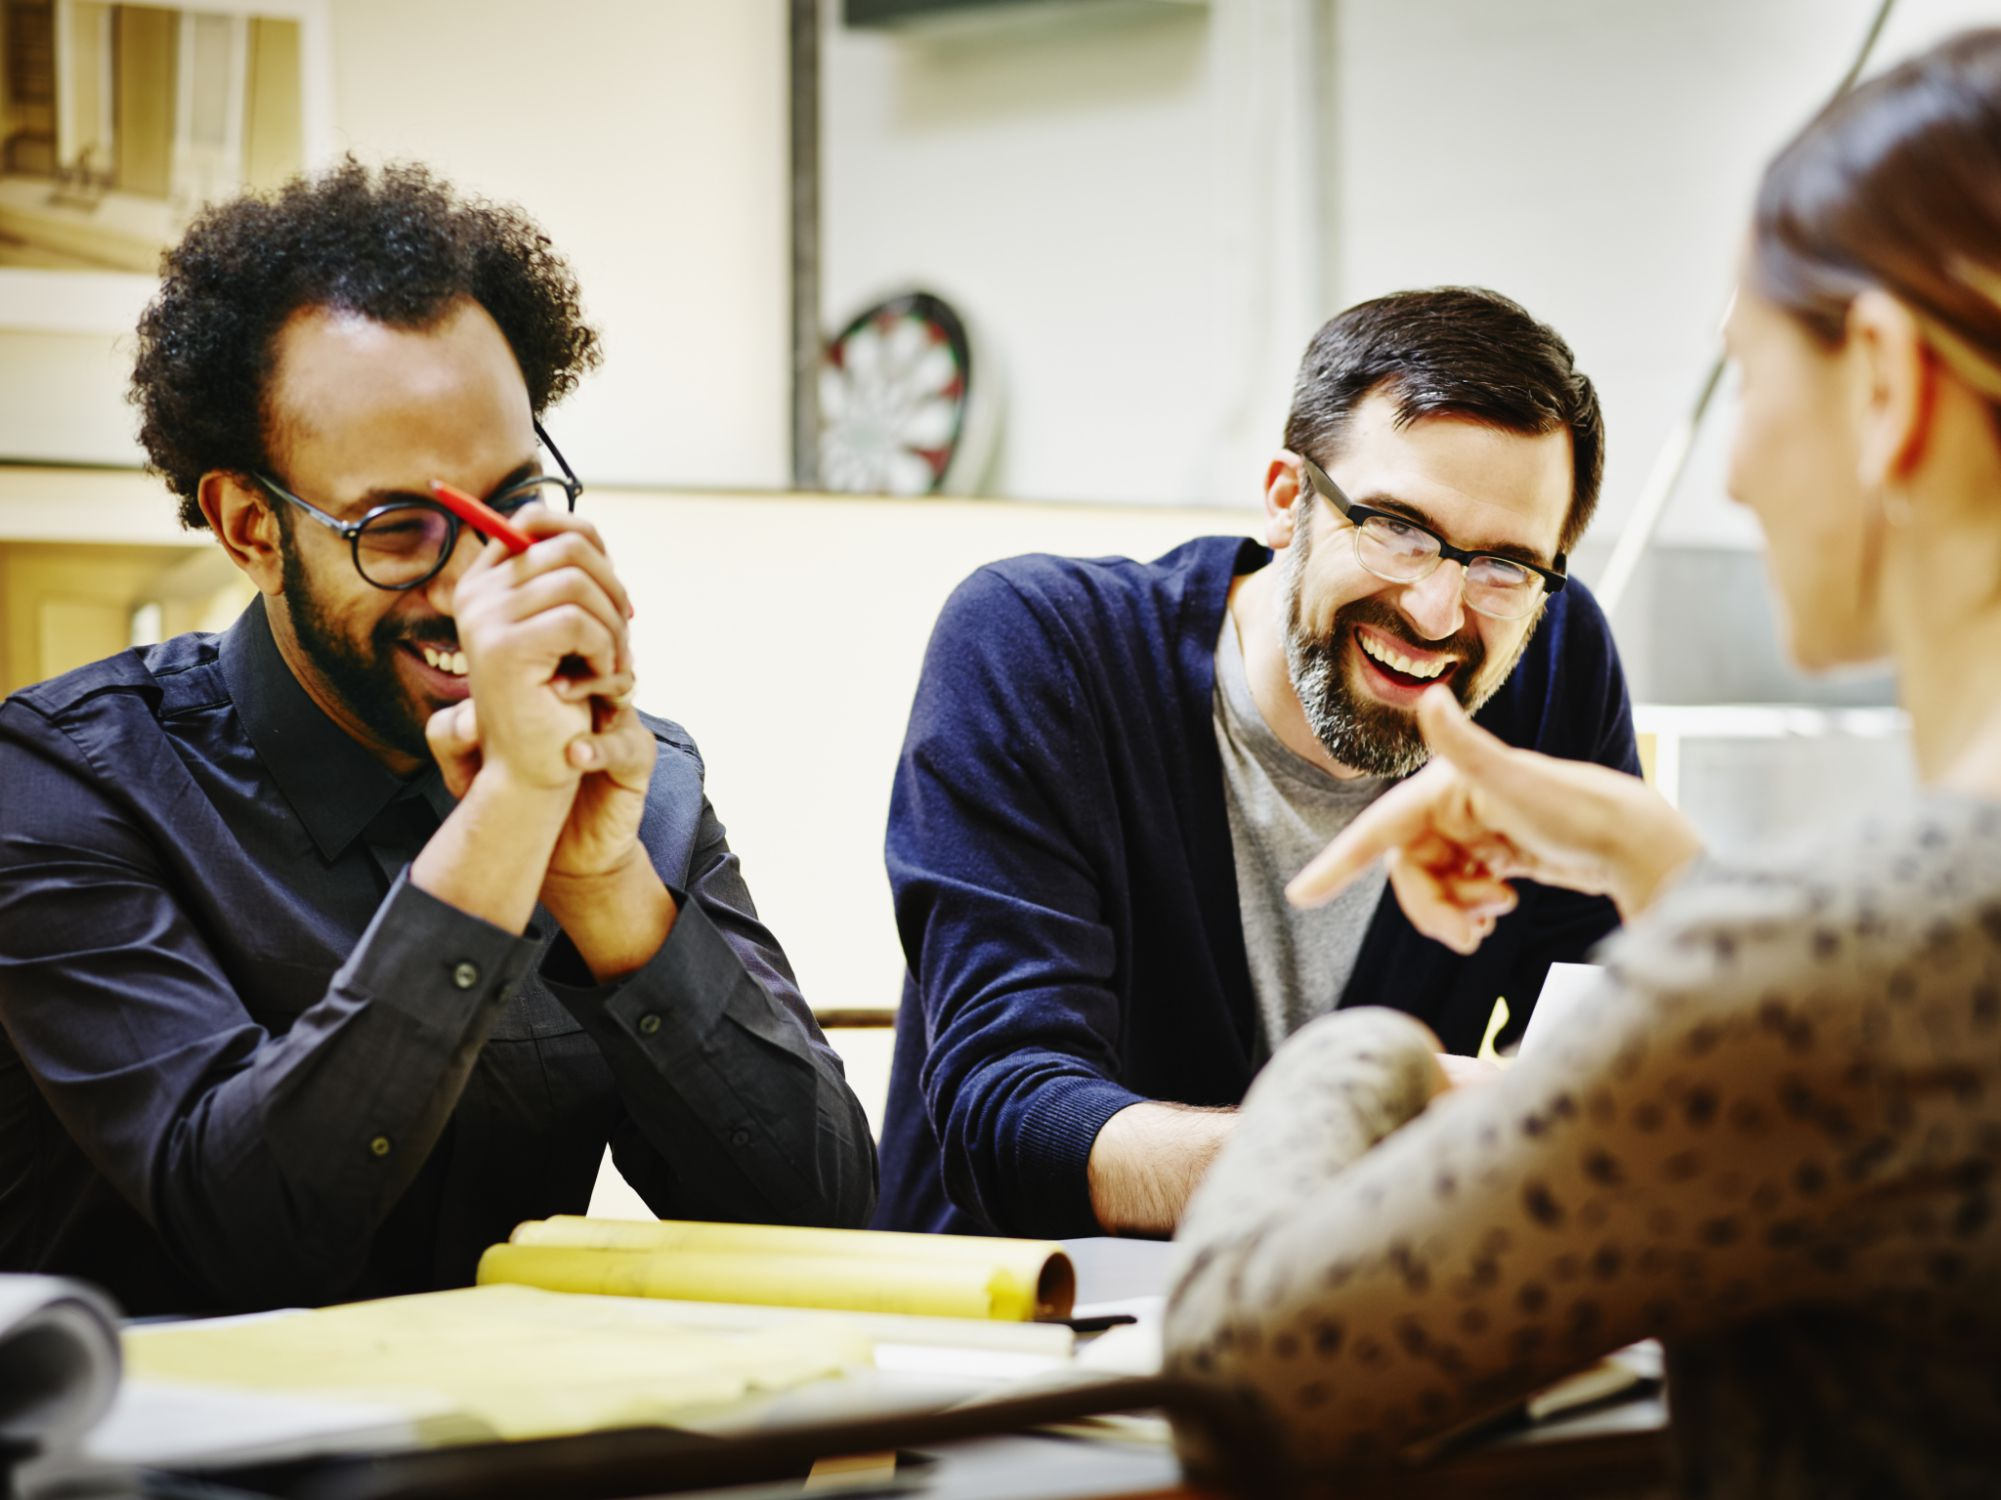 Best Ways to Answer Interview Questions About Your Strengths